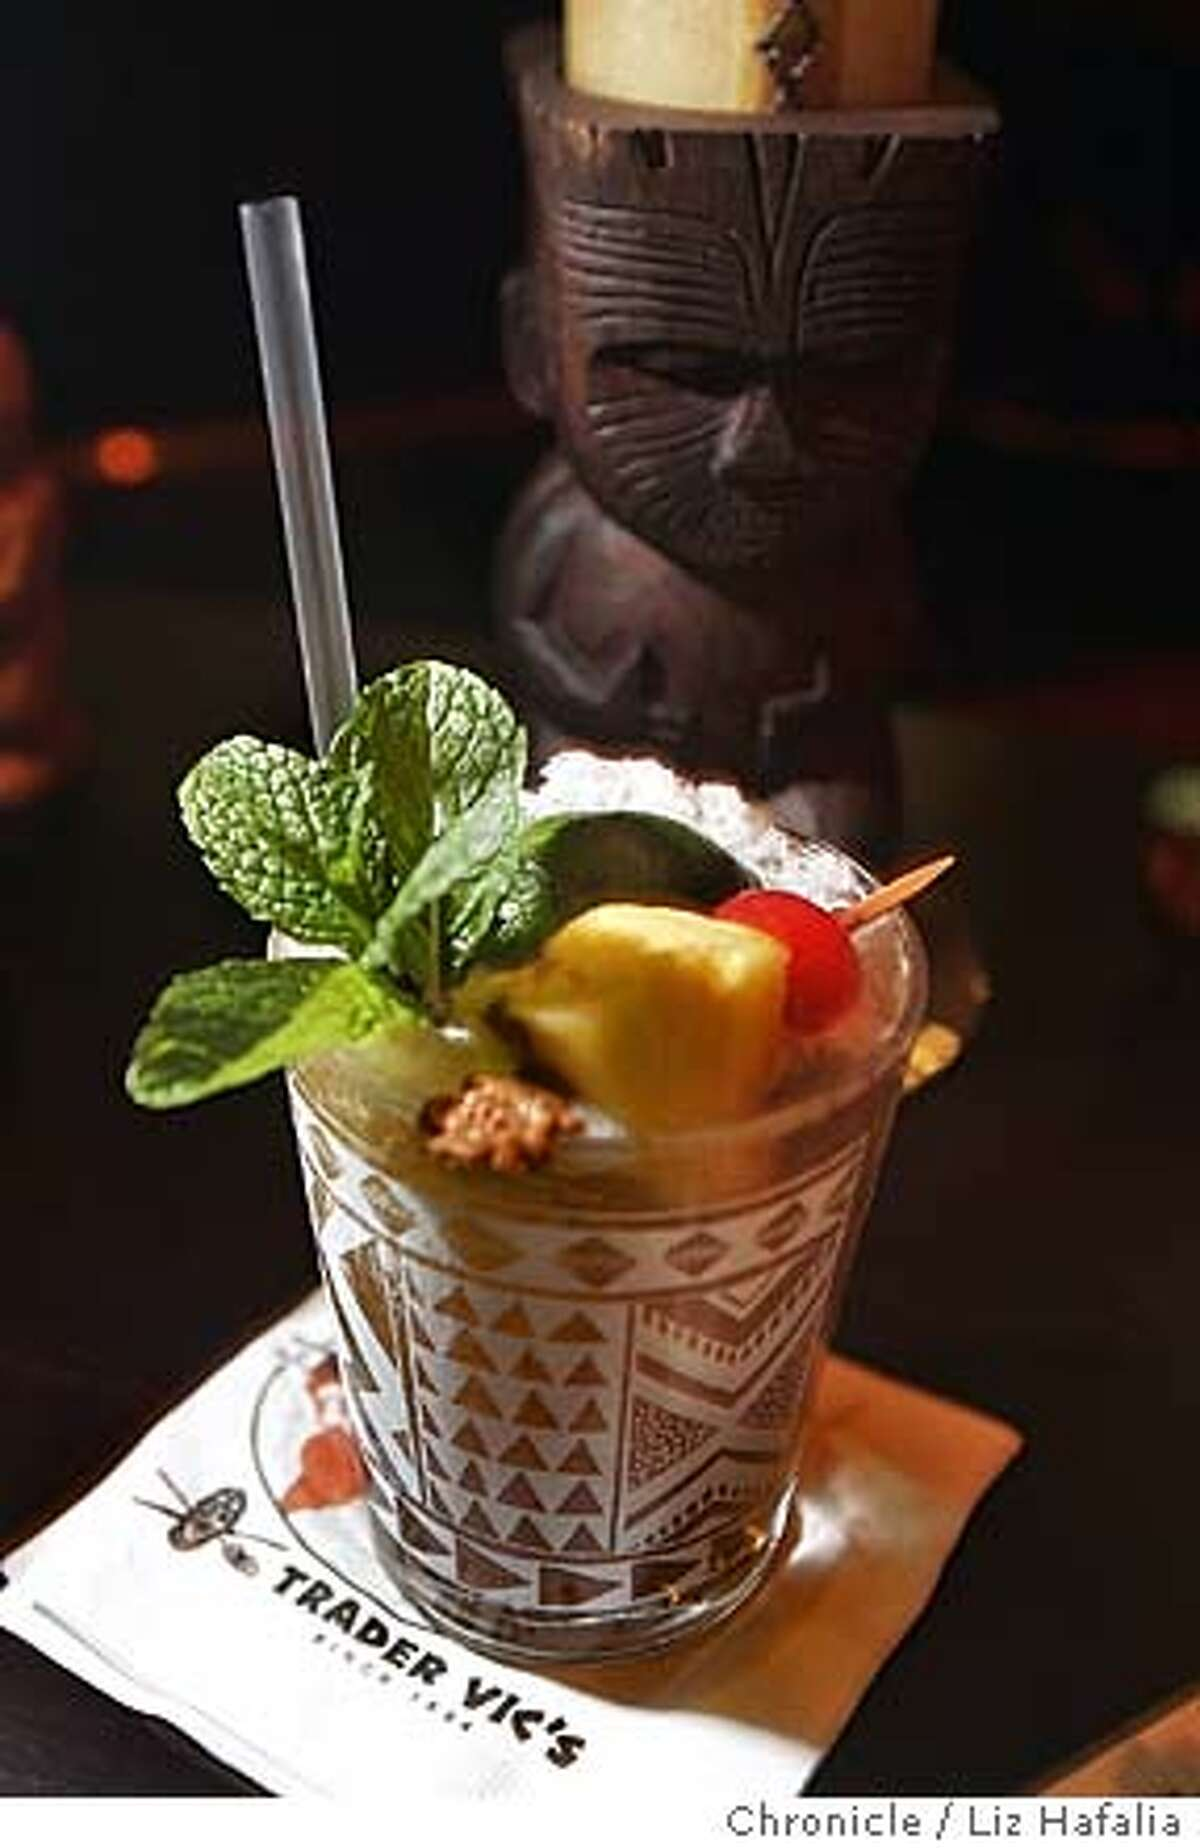 Illustrating a story on the history of the mai tai cocktail, assistant bar manager of Trader Vic's restaurant, Jim Shoemake, makes a mai tai. � Shot on 11/4/04 in San Francisco. LIZ HAFALIA/The Chronicle